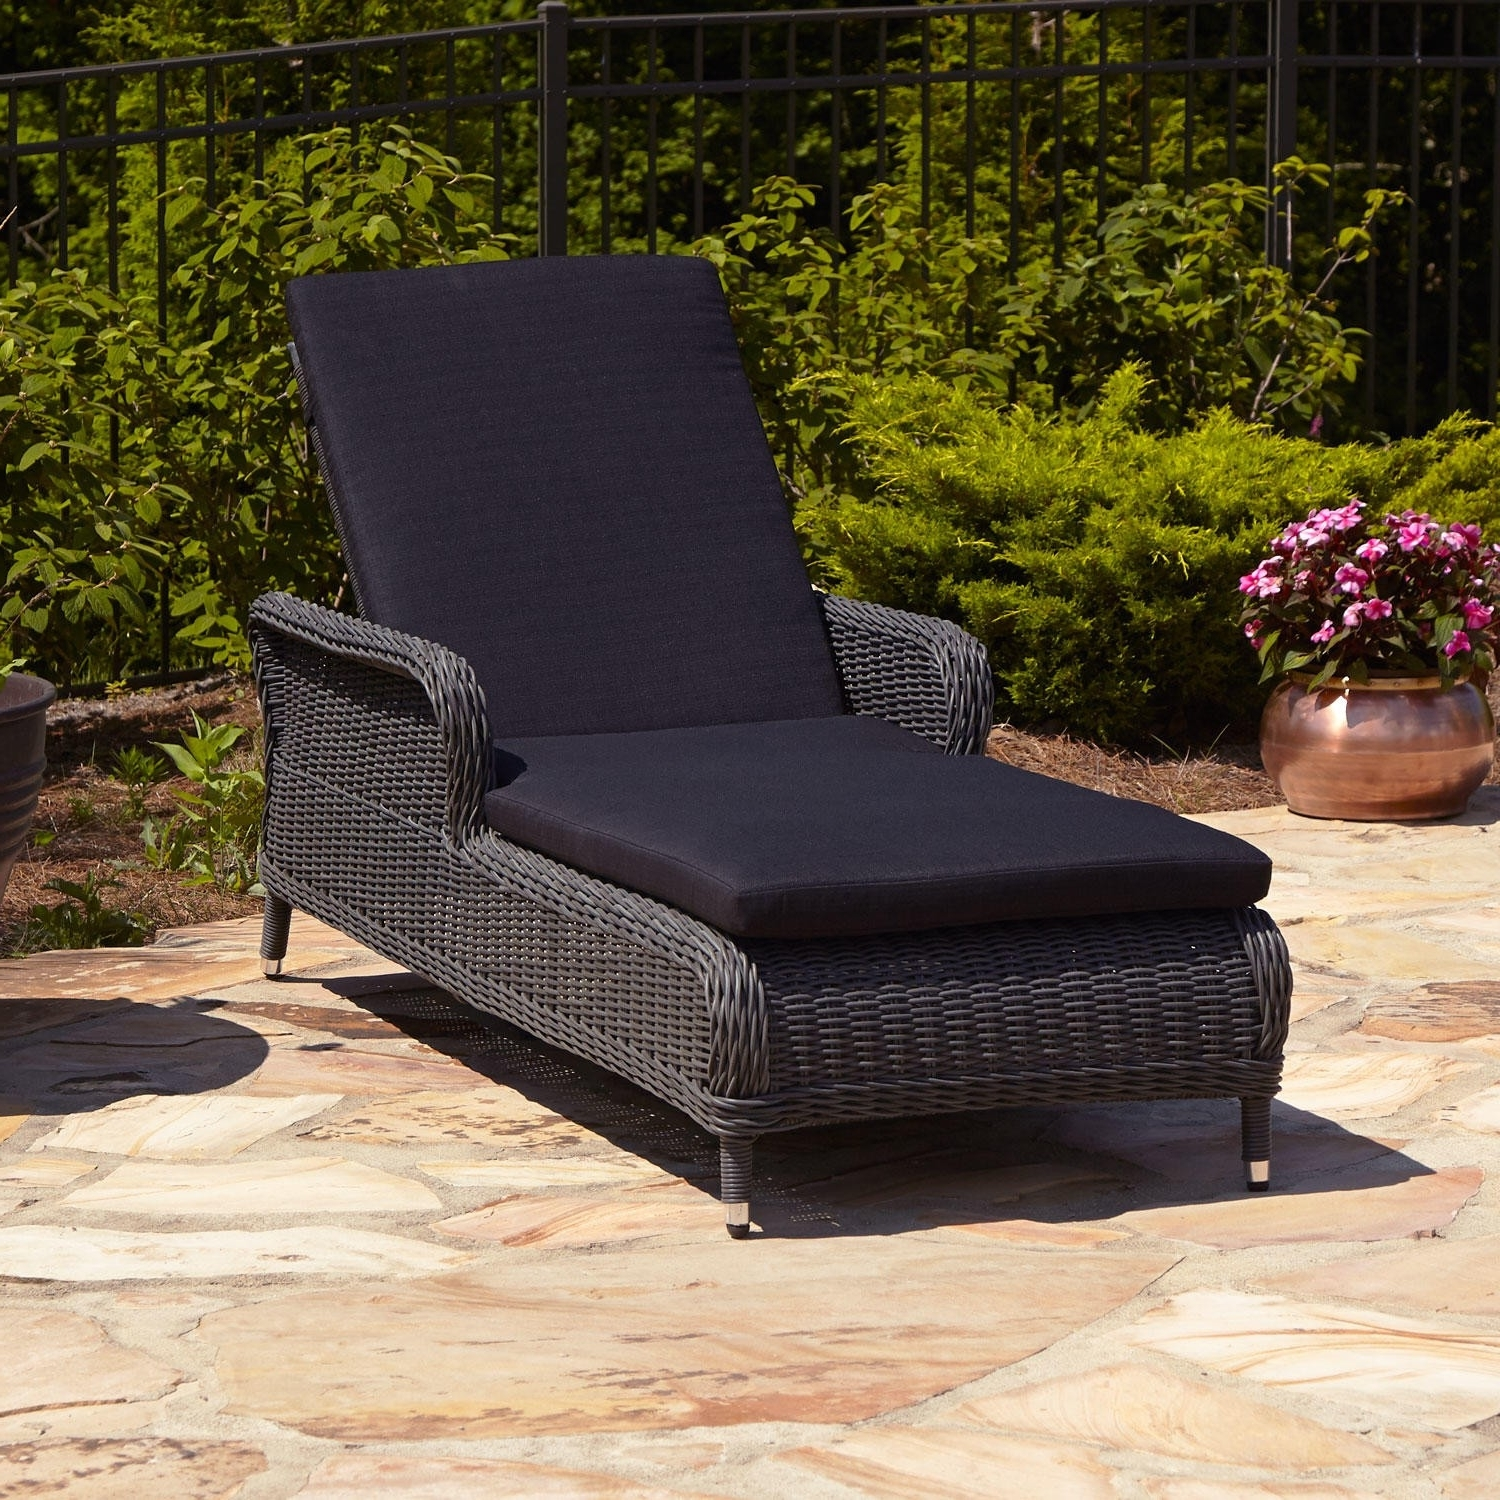 Wicker Chaise Lounge Chairs Throughout Most Popular Remarkable Wicker Chaise Lounge Chair Gray Patio Furniture All (View 2 of 15)